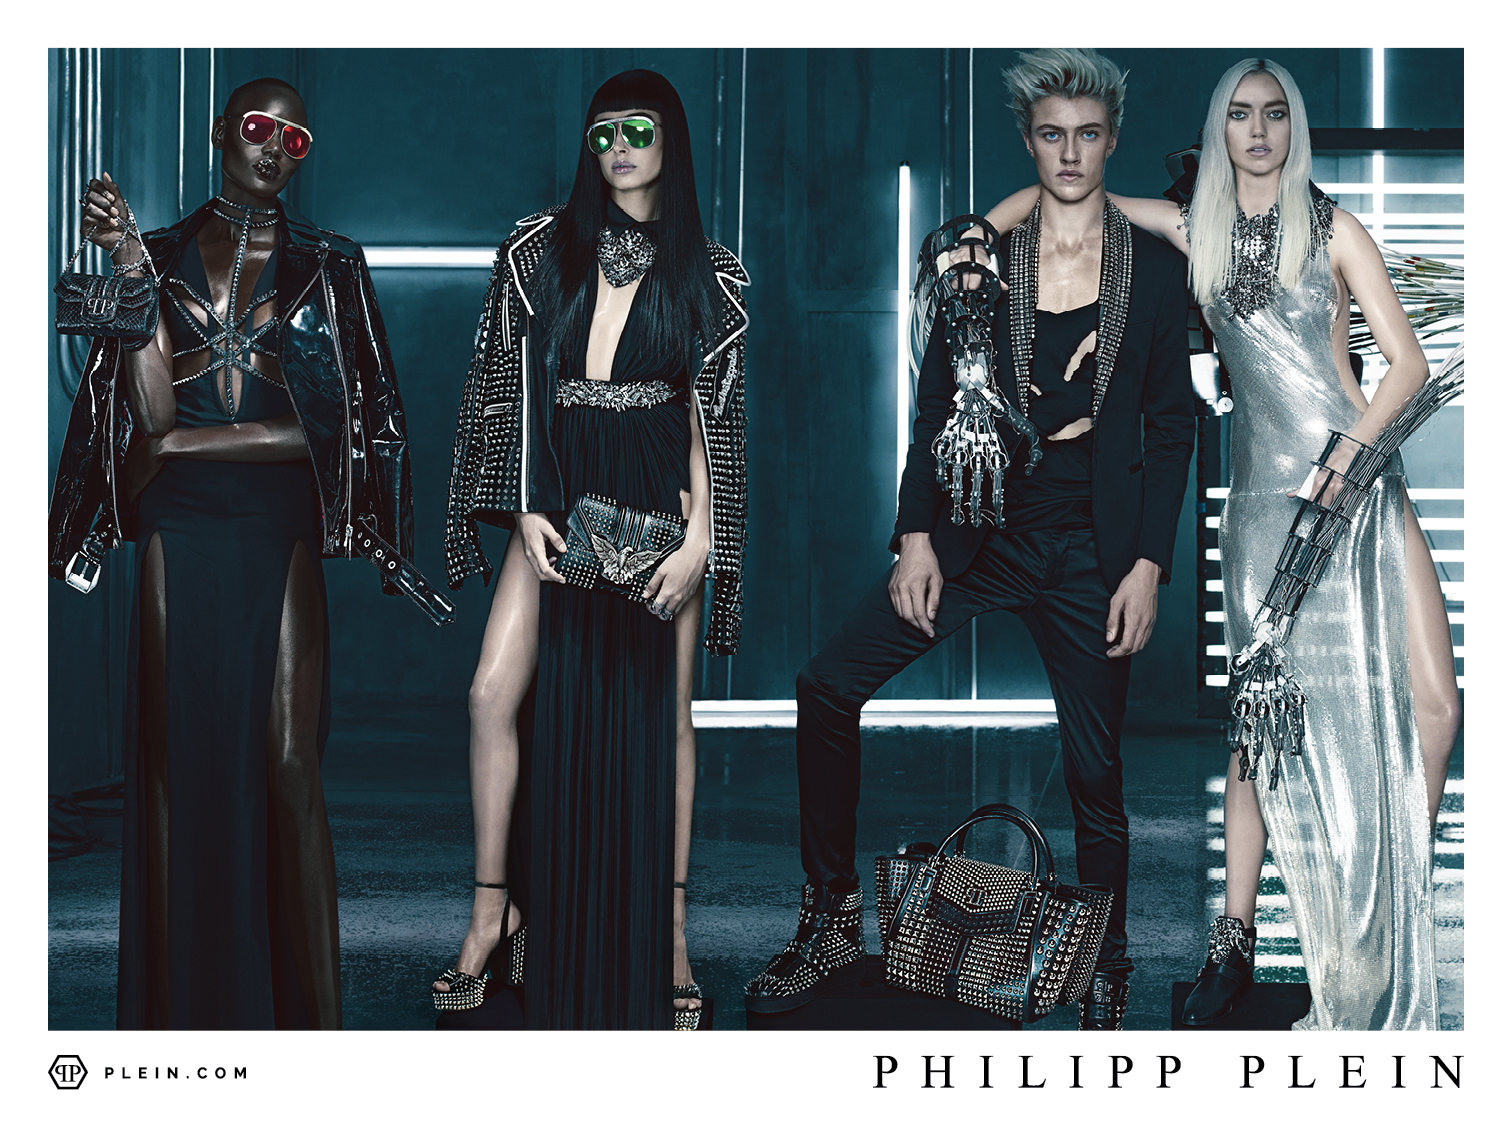 Lucky Blue Smith, Hailey Baldwin in Philipp Plein SS '16 Campaign's Model Quartet